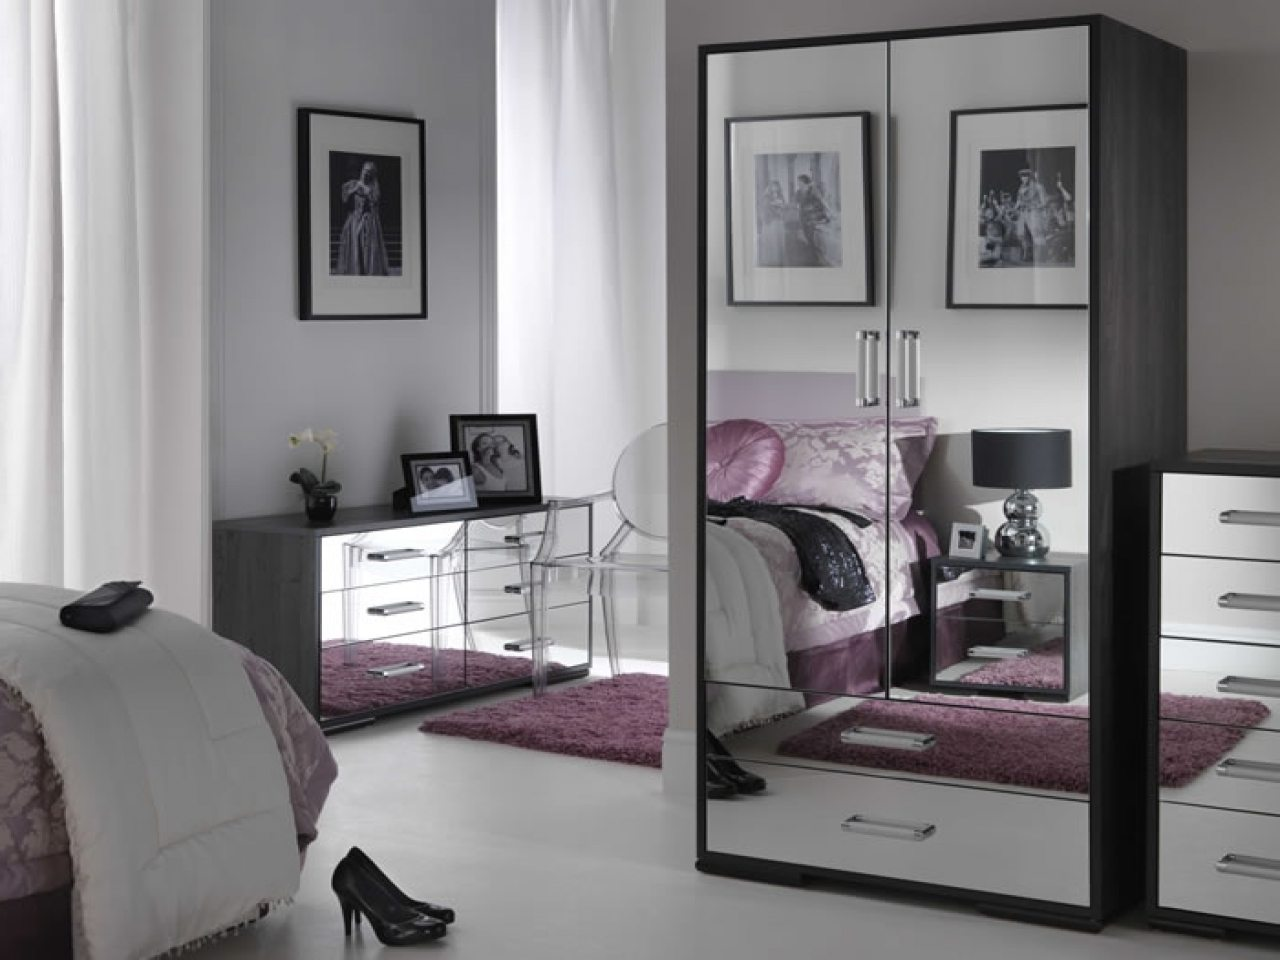 Black Mirrored Glass Bedroom Furniture Make Your Home Modern Mirror Set Kim Kardashian Headboard Mirrors Wall Nightstand Sets Apppie Org